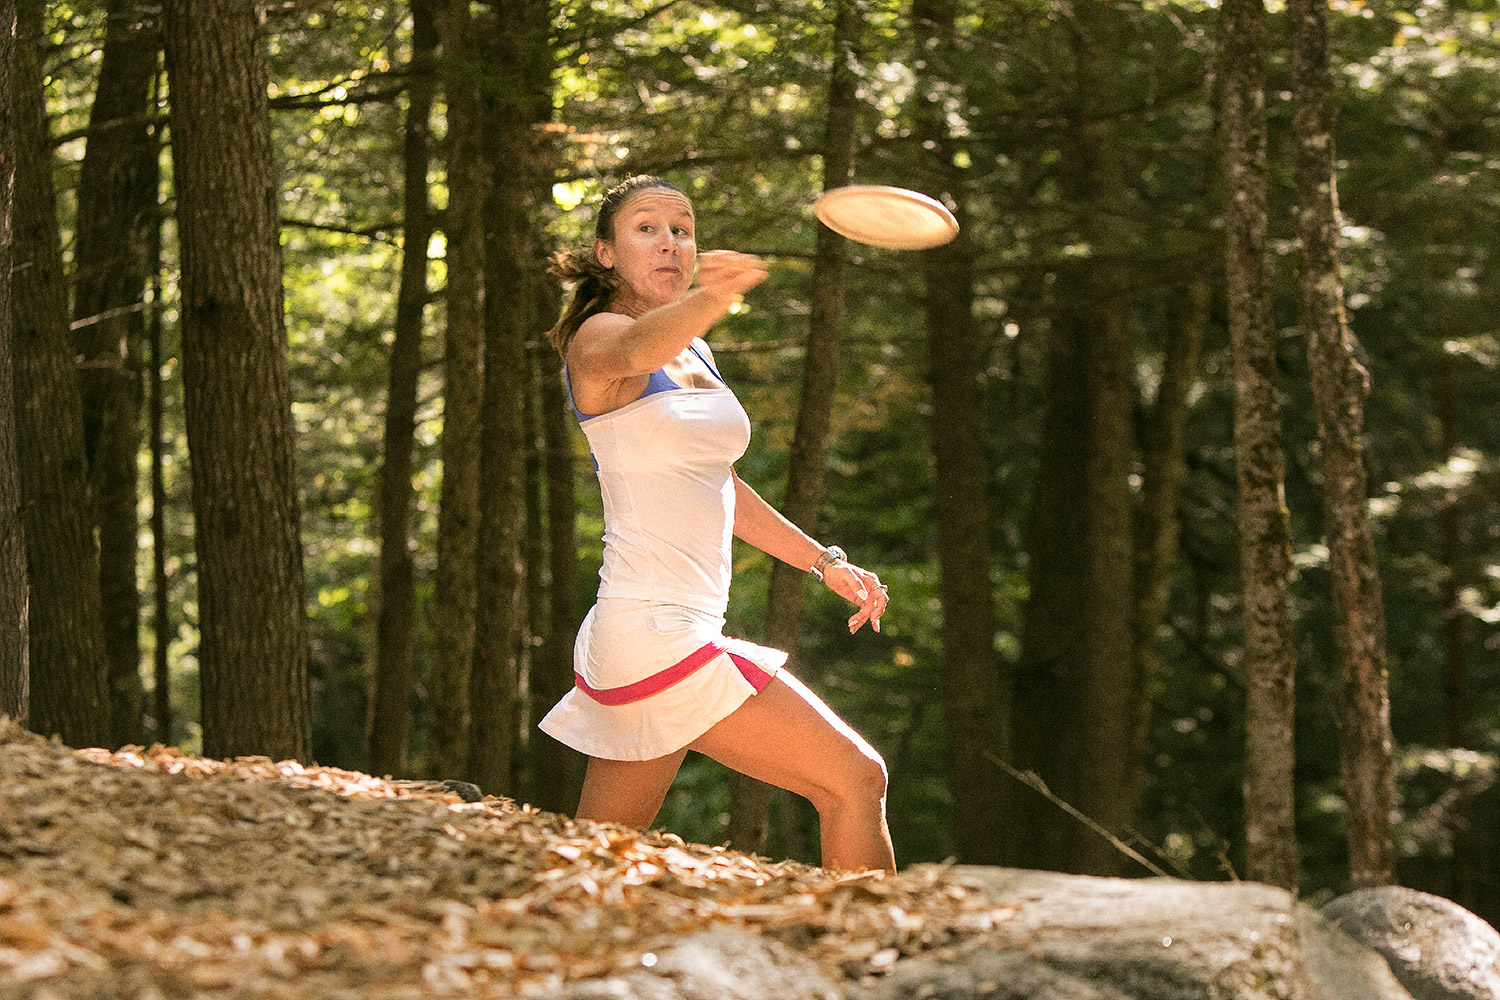 Lizbeth Besok of Florida releases a disc while practicing on a course at the Sabattus Disc Golf Complex. Gregory Rec/Staff Photographer